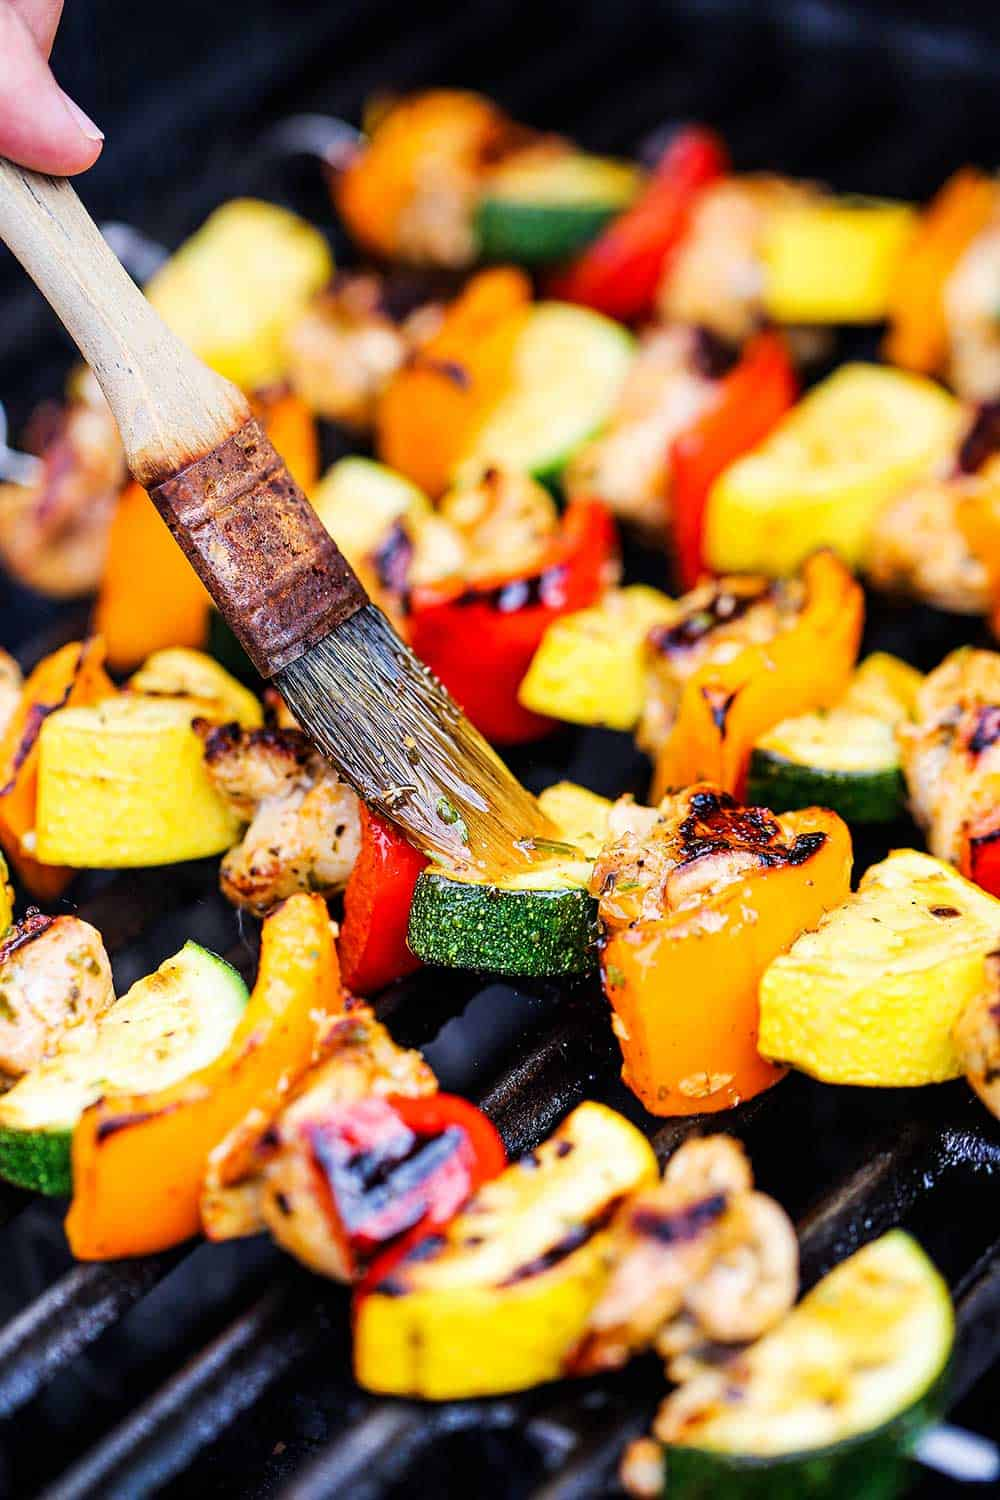 A person brushing marinade onto skewers on a grill that contain pieces of uncooked chicken as well as bell peppers, squash, and zucchini pieces.